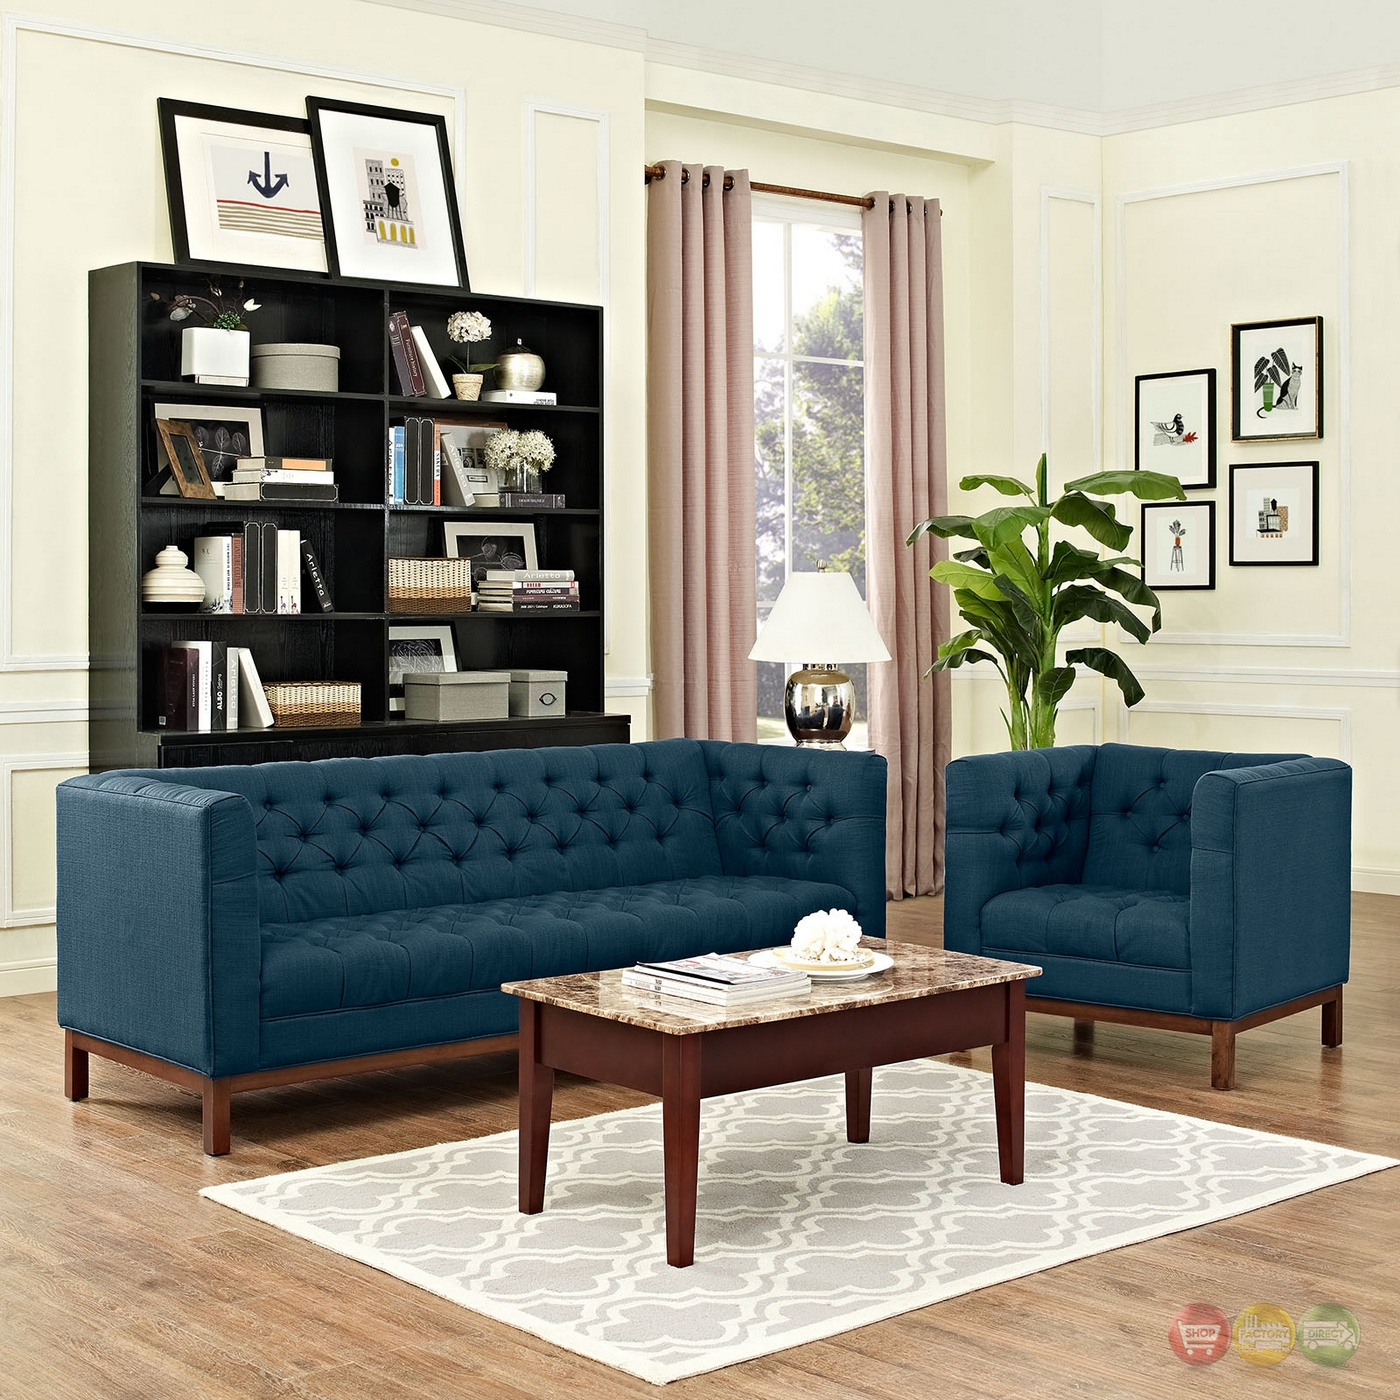 panache sofa set gray sectional microfiber mid century modern 2pc upholstered and armchair